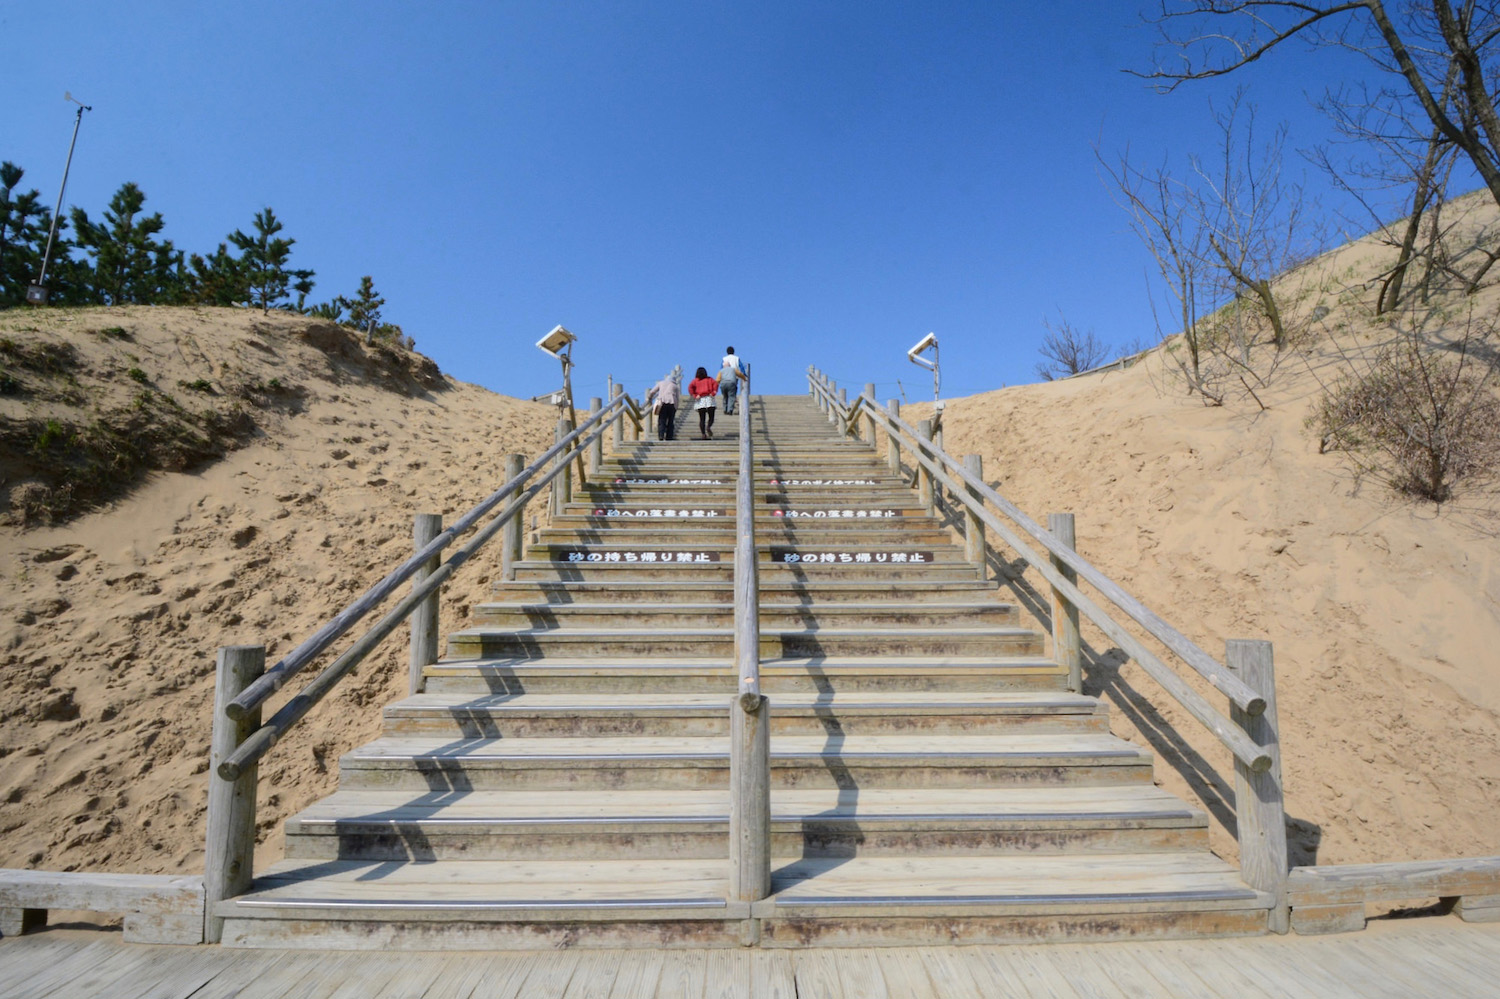 Stairs to desert in Tottori, Japan